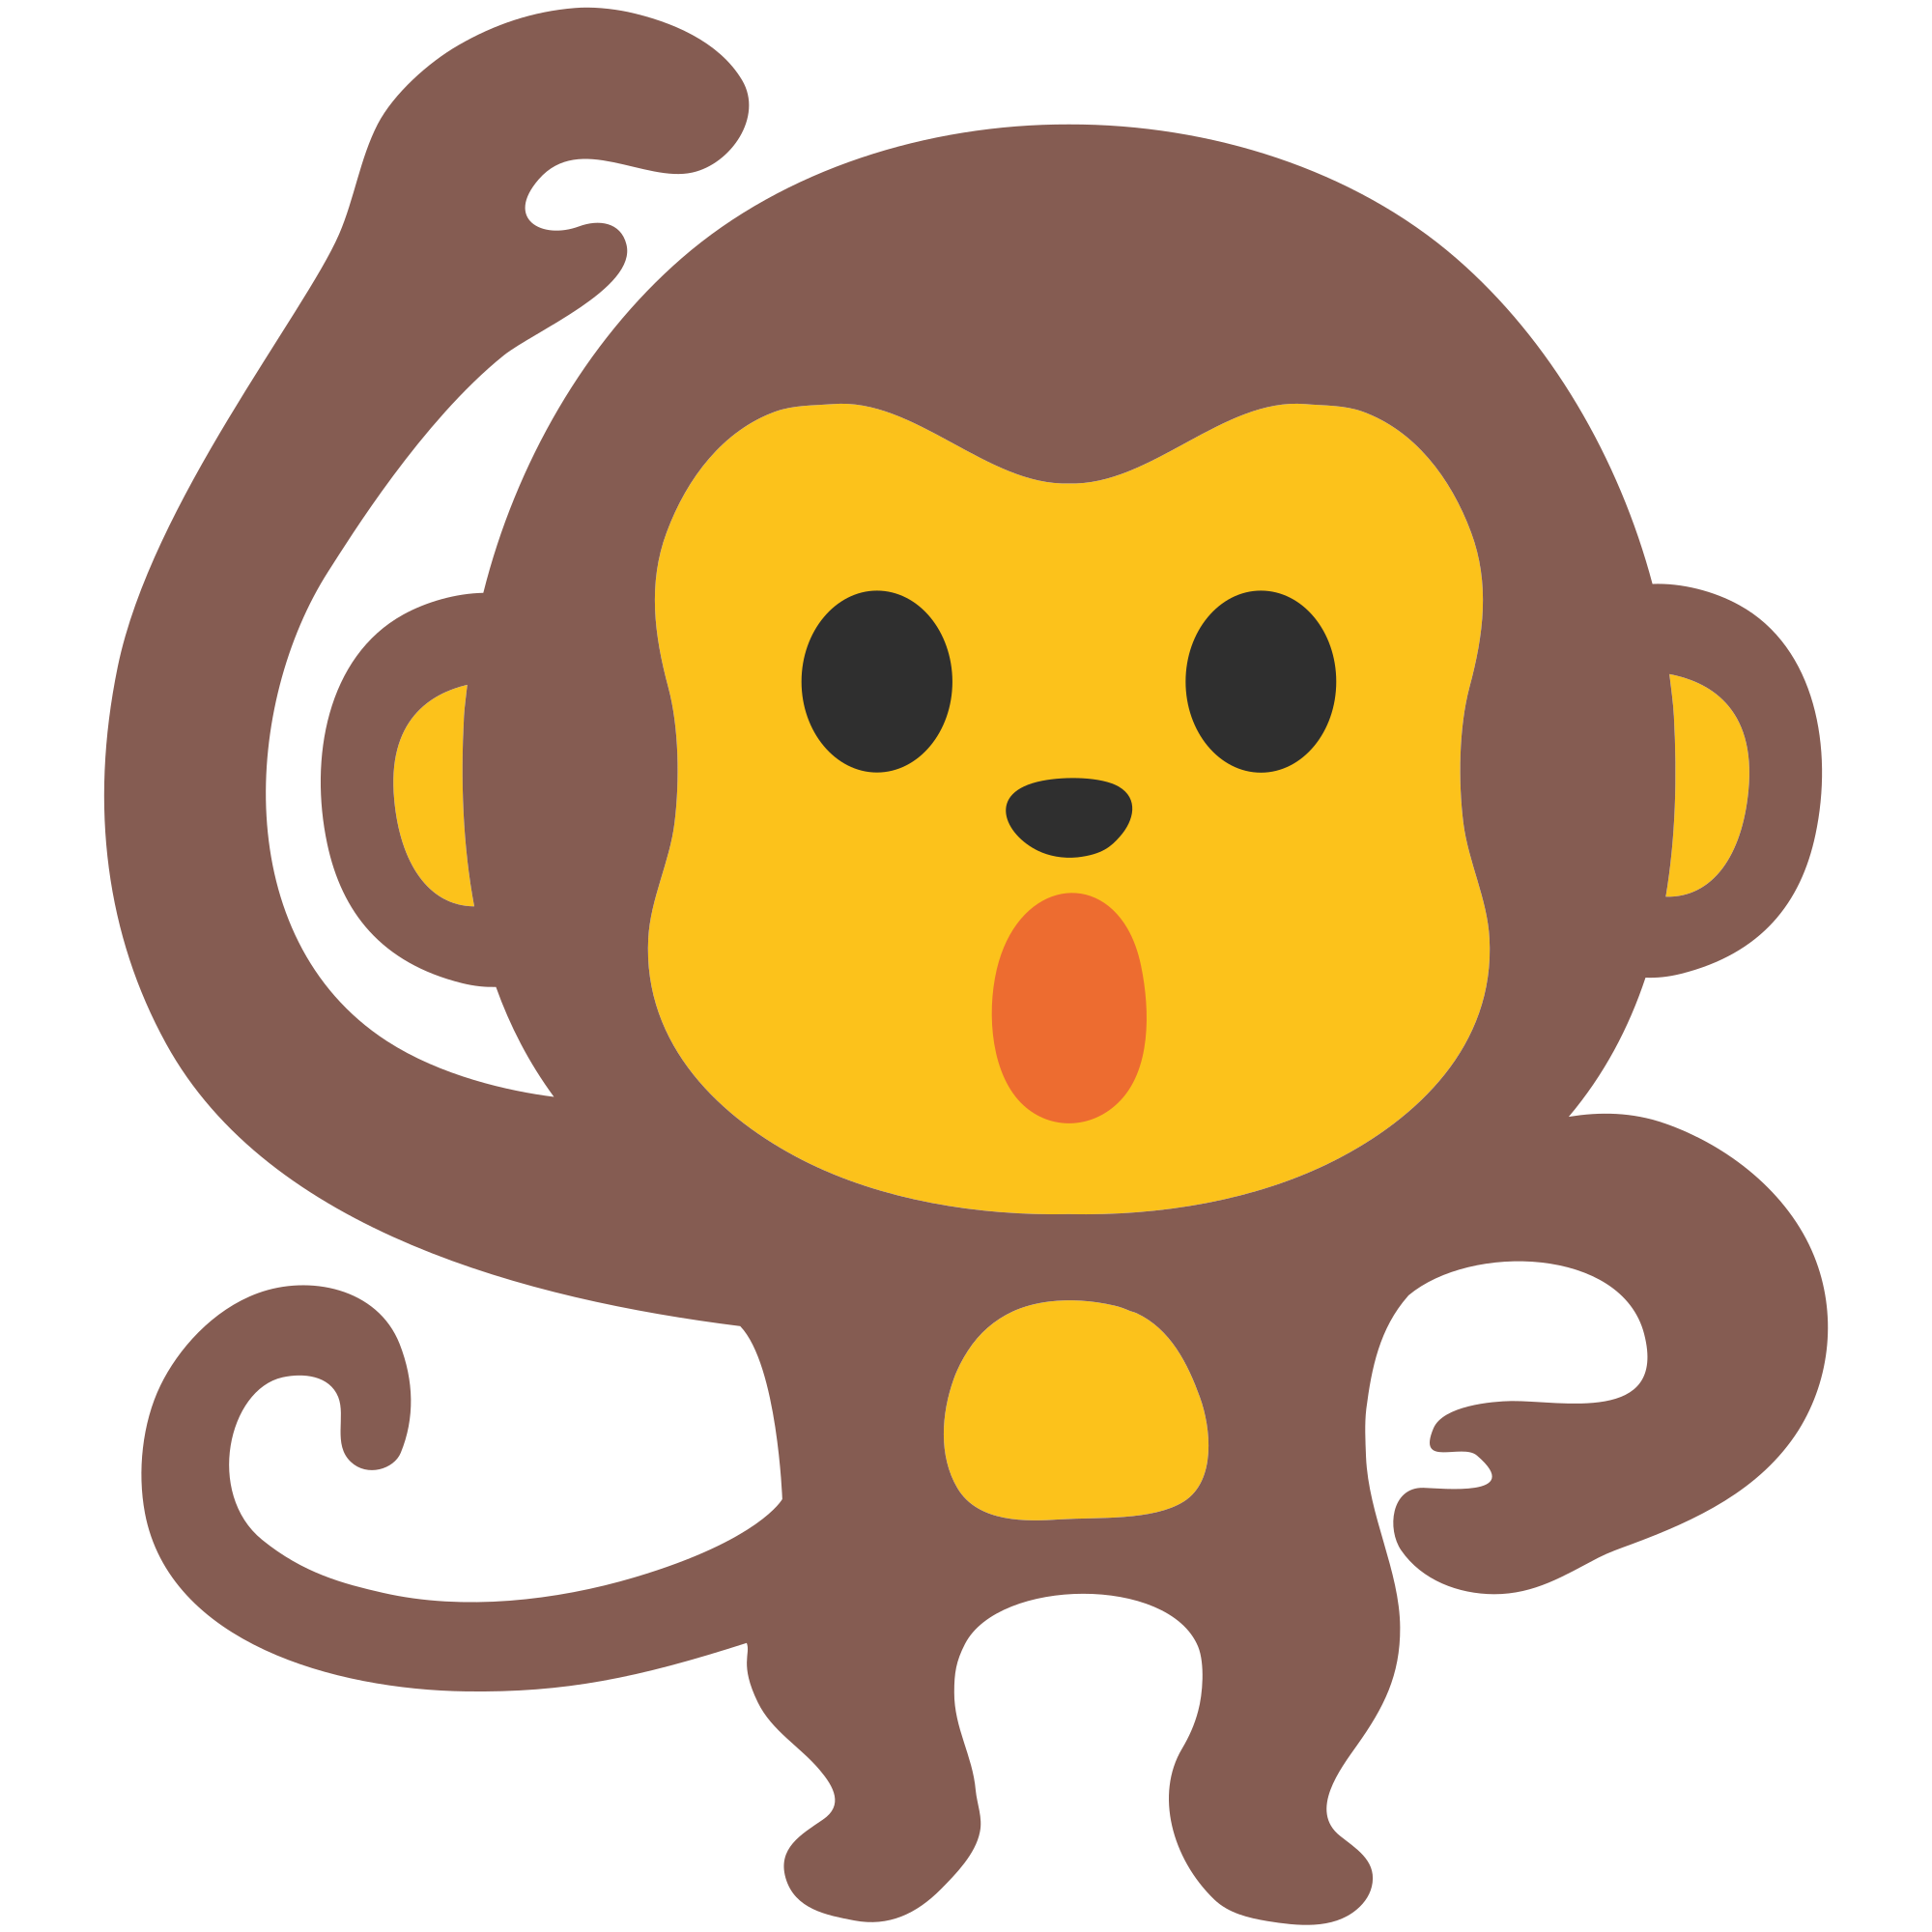 Monkey svg #9, Download drawings